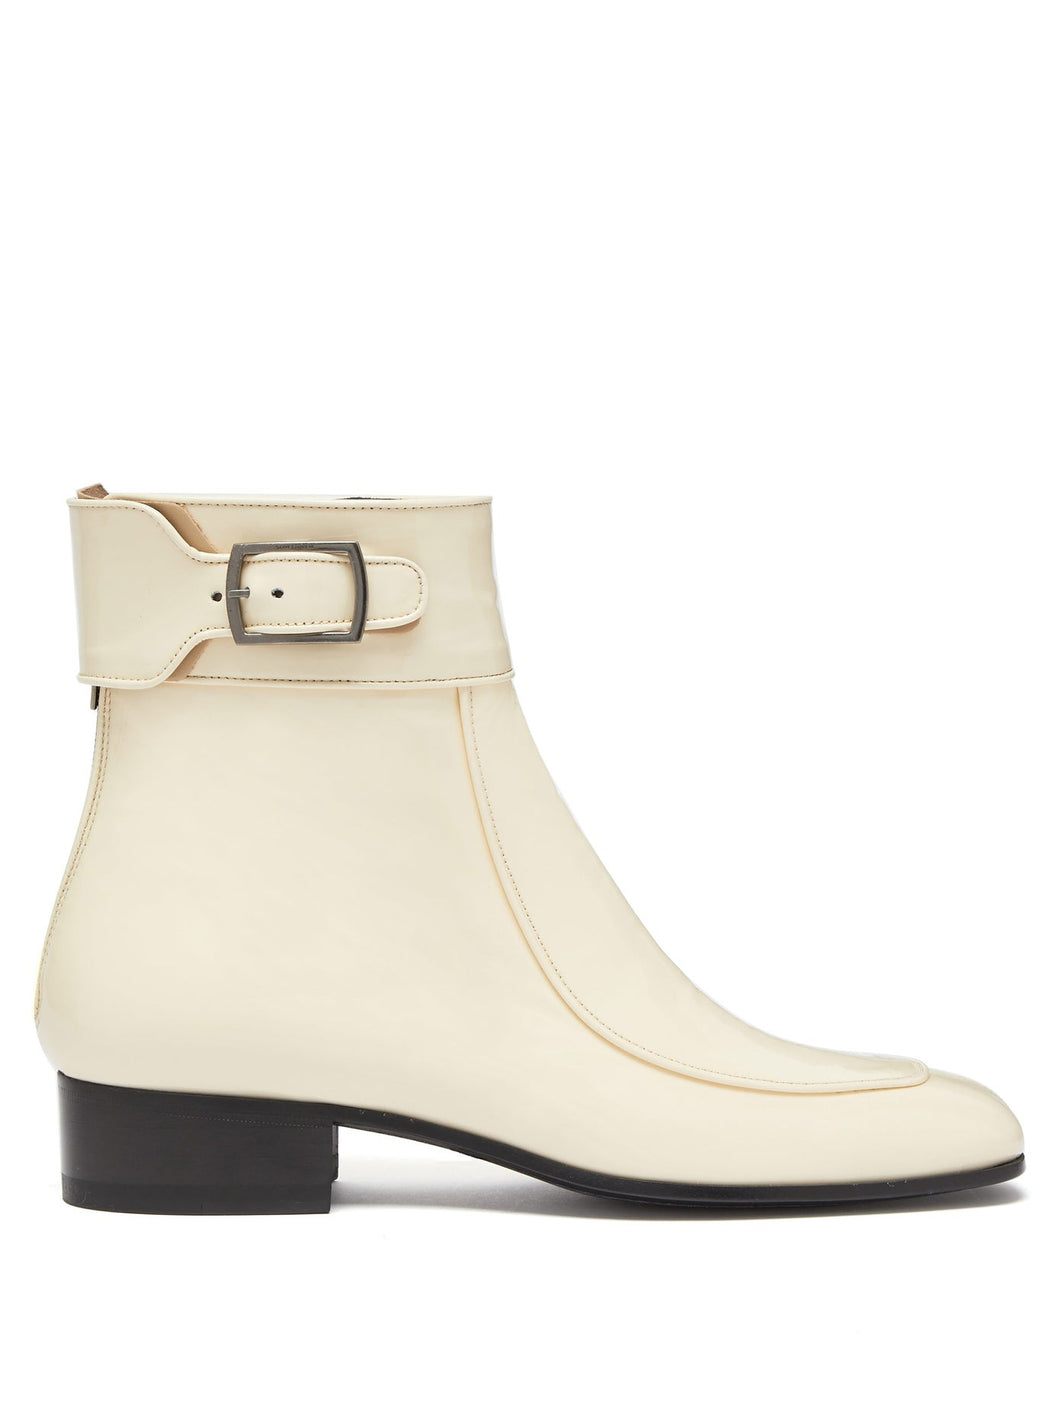 Miles square-toe patent-leather ankle boots